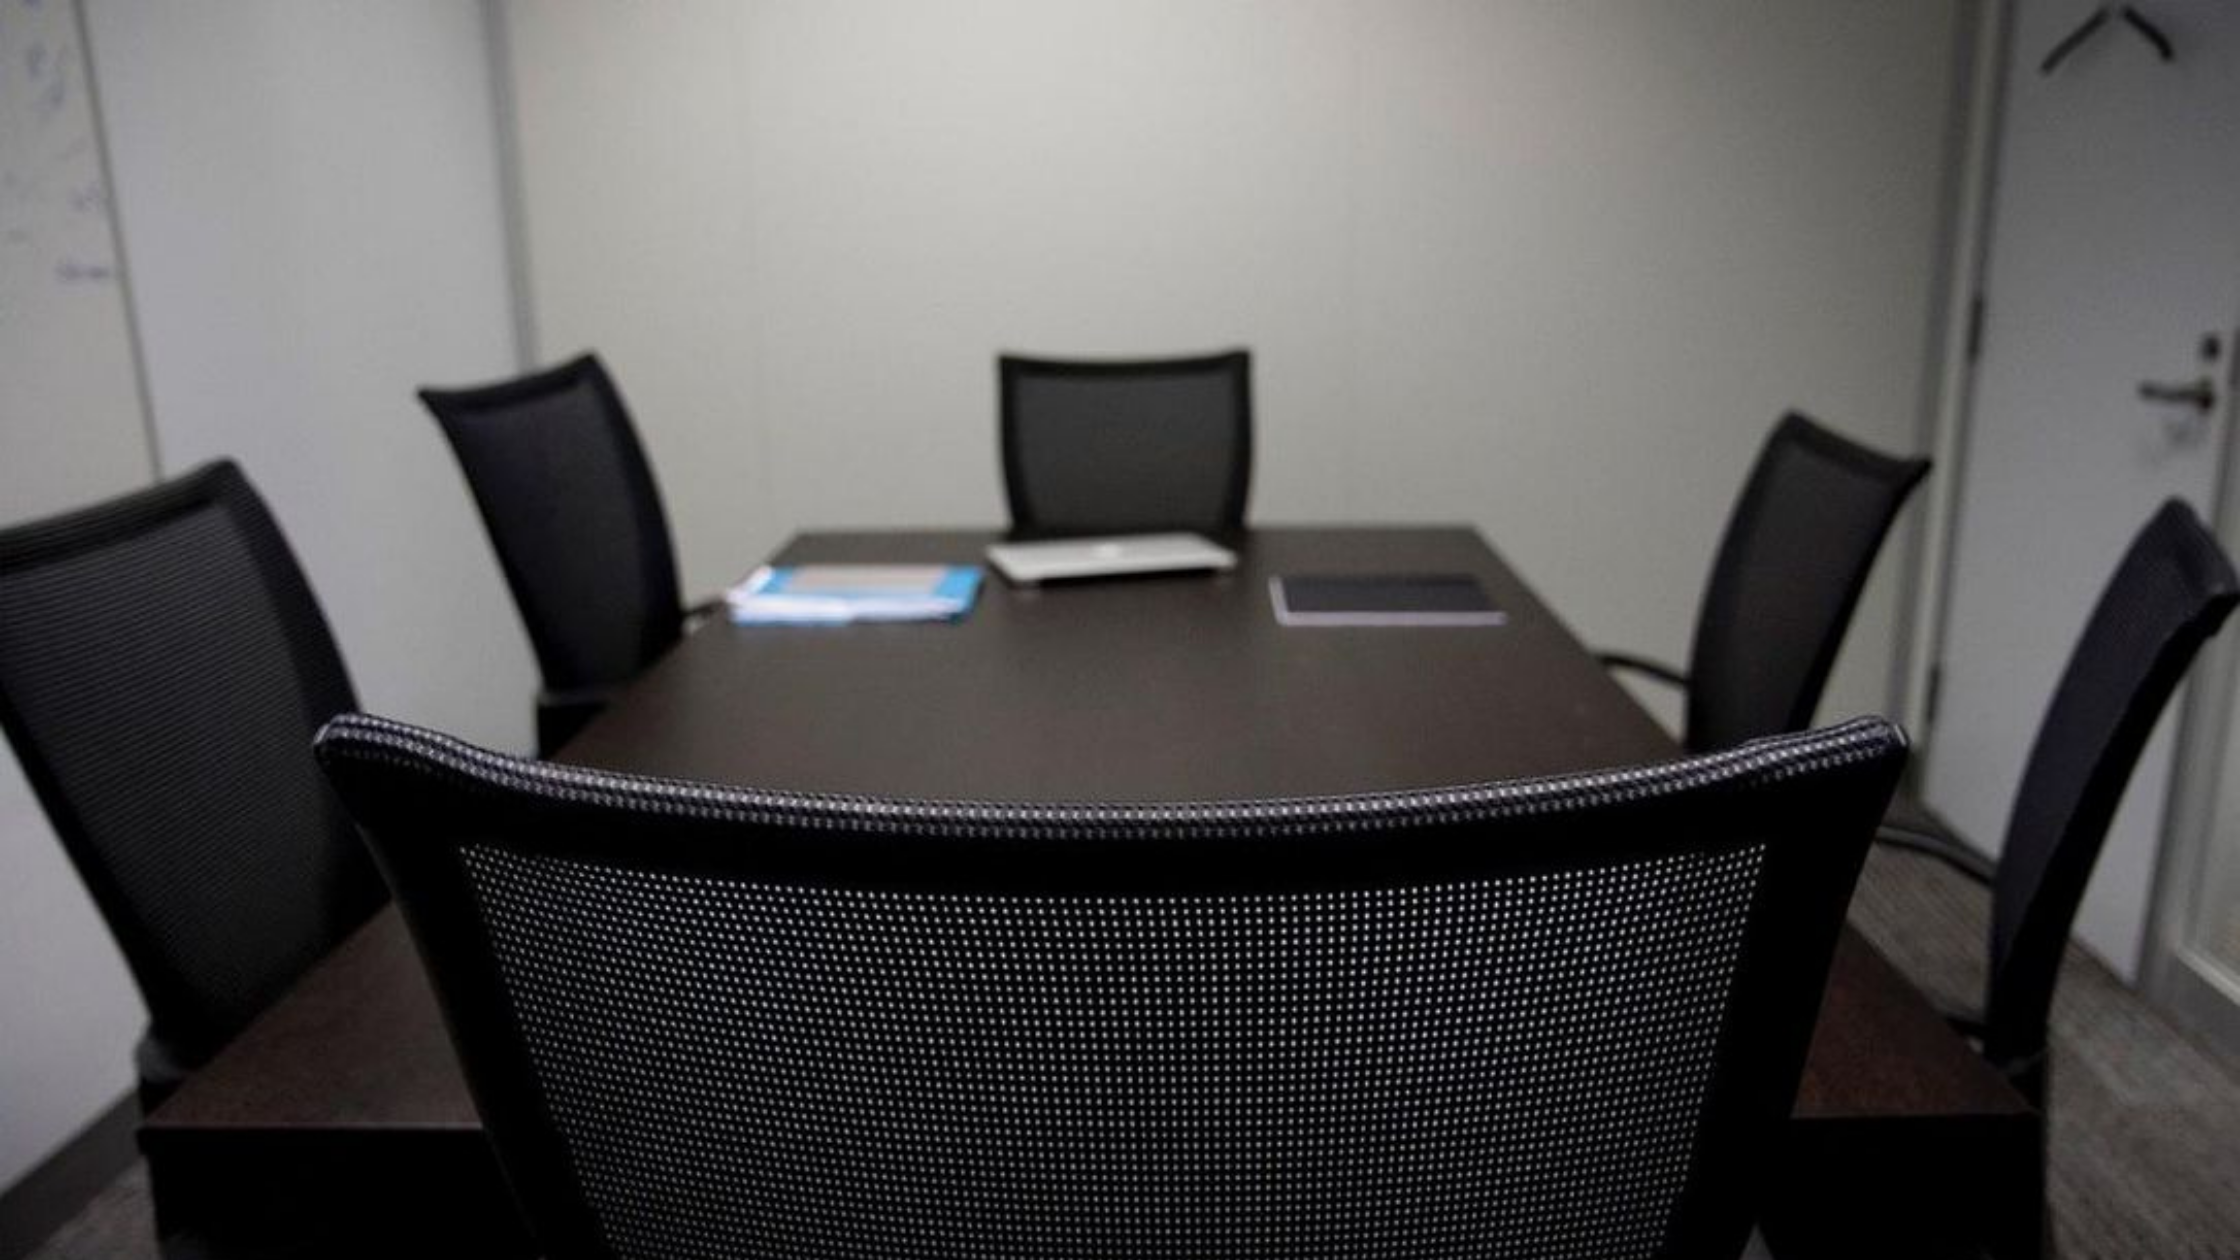 Canada has a problem in its boardrooms. A new study shows racialized voices are sorely missing